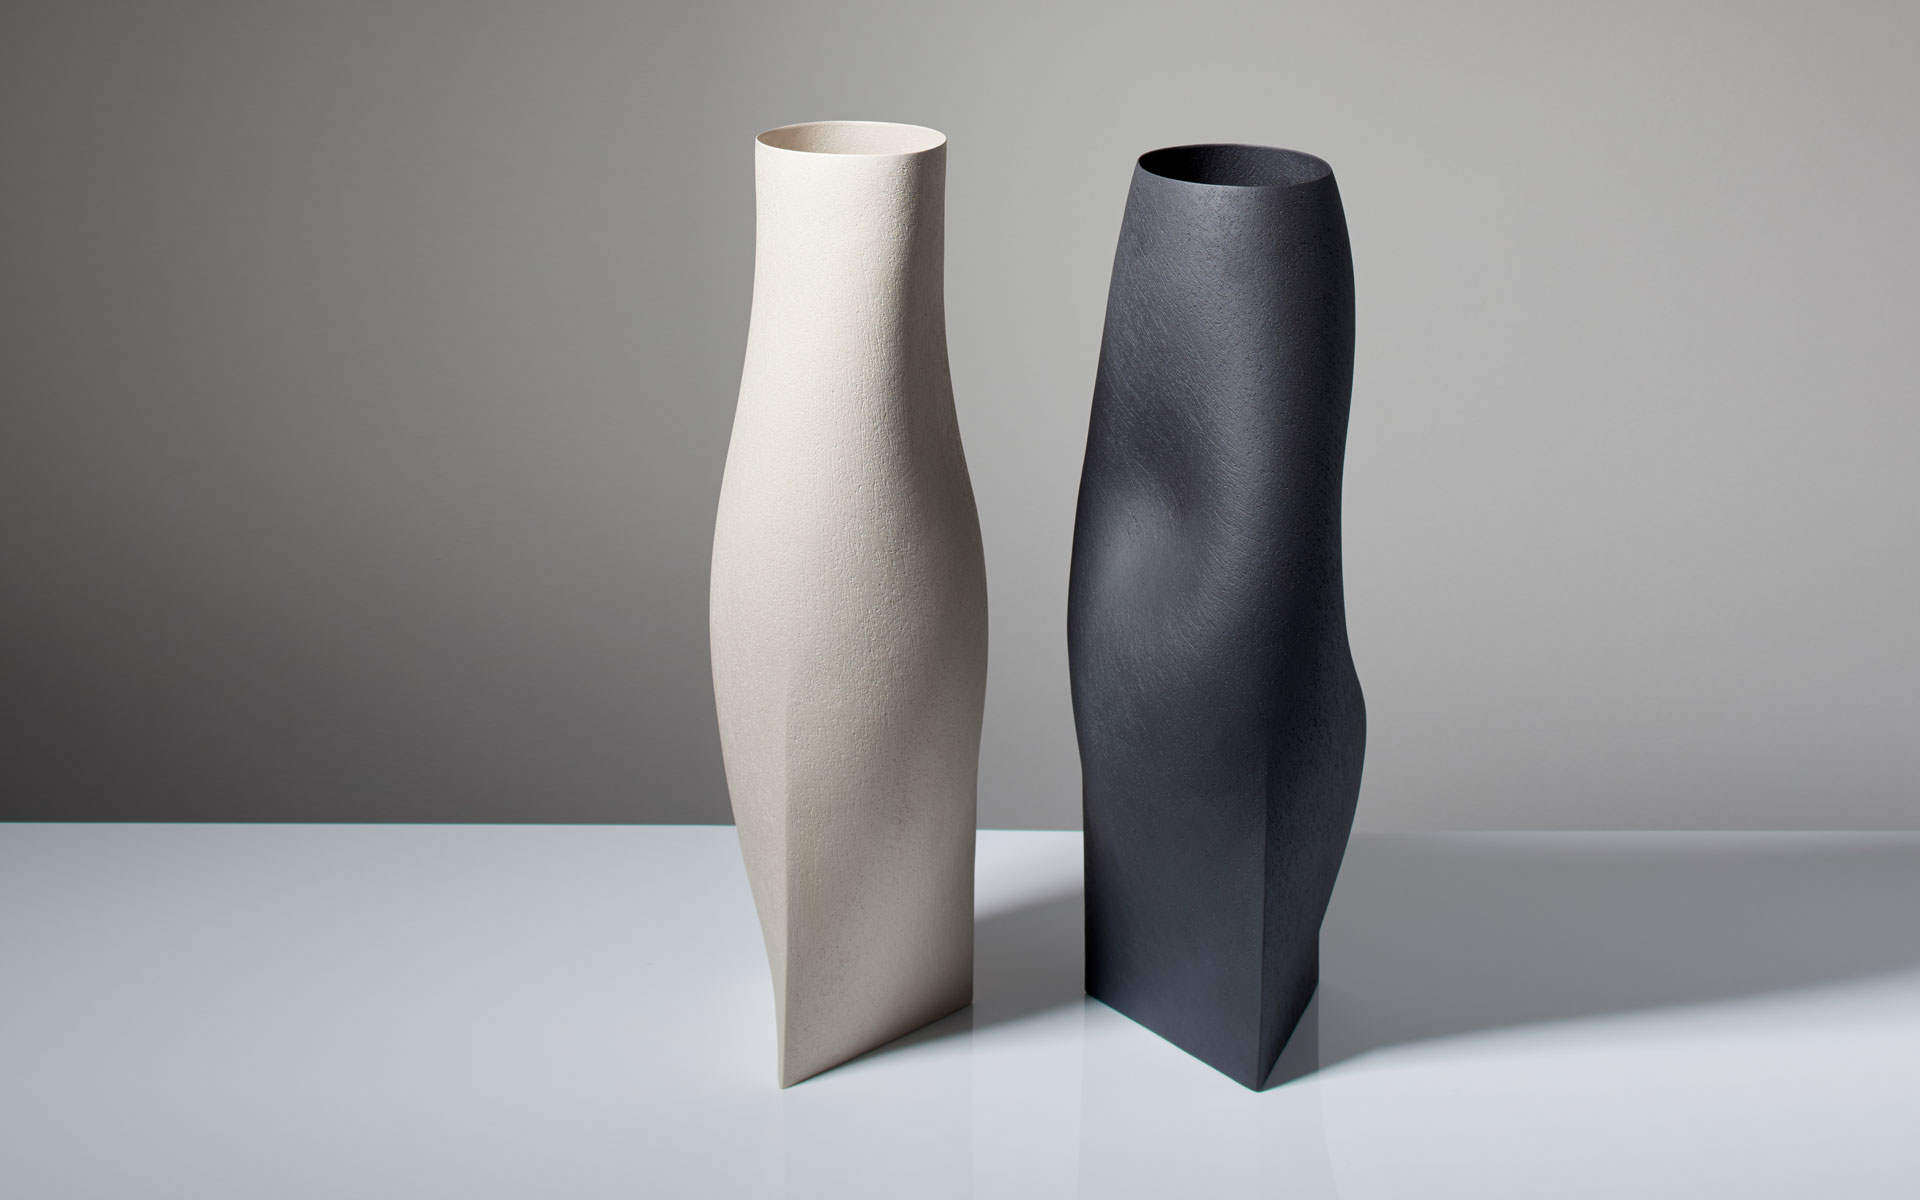 Black and Grey Vessels